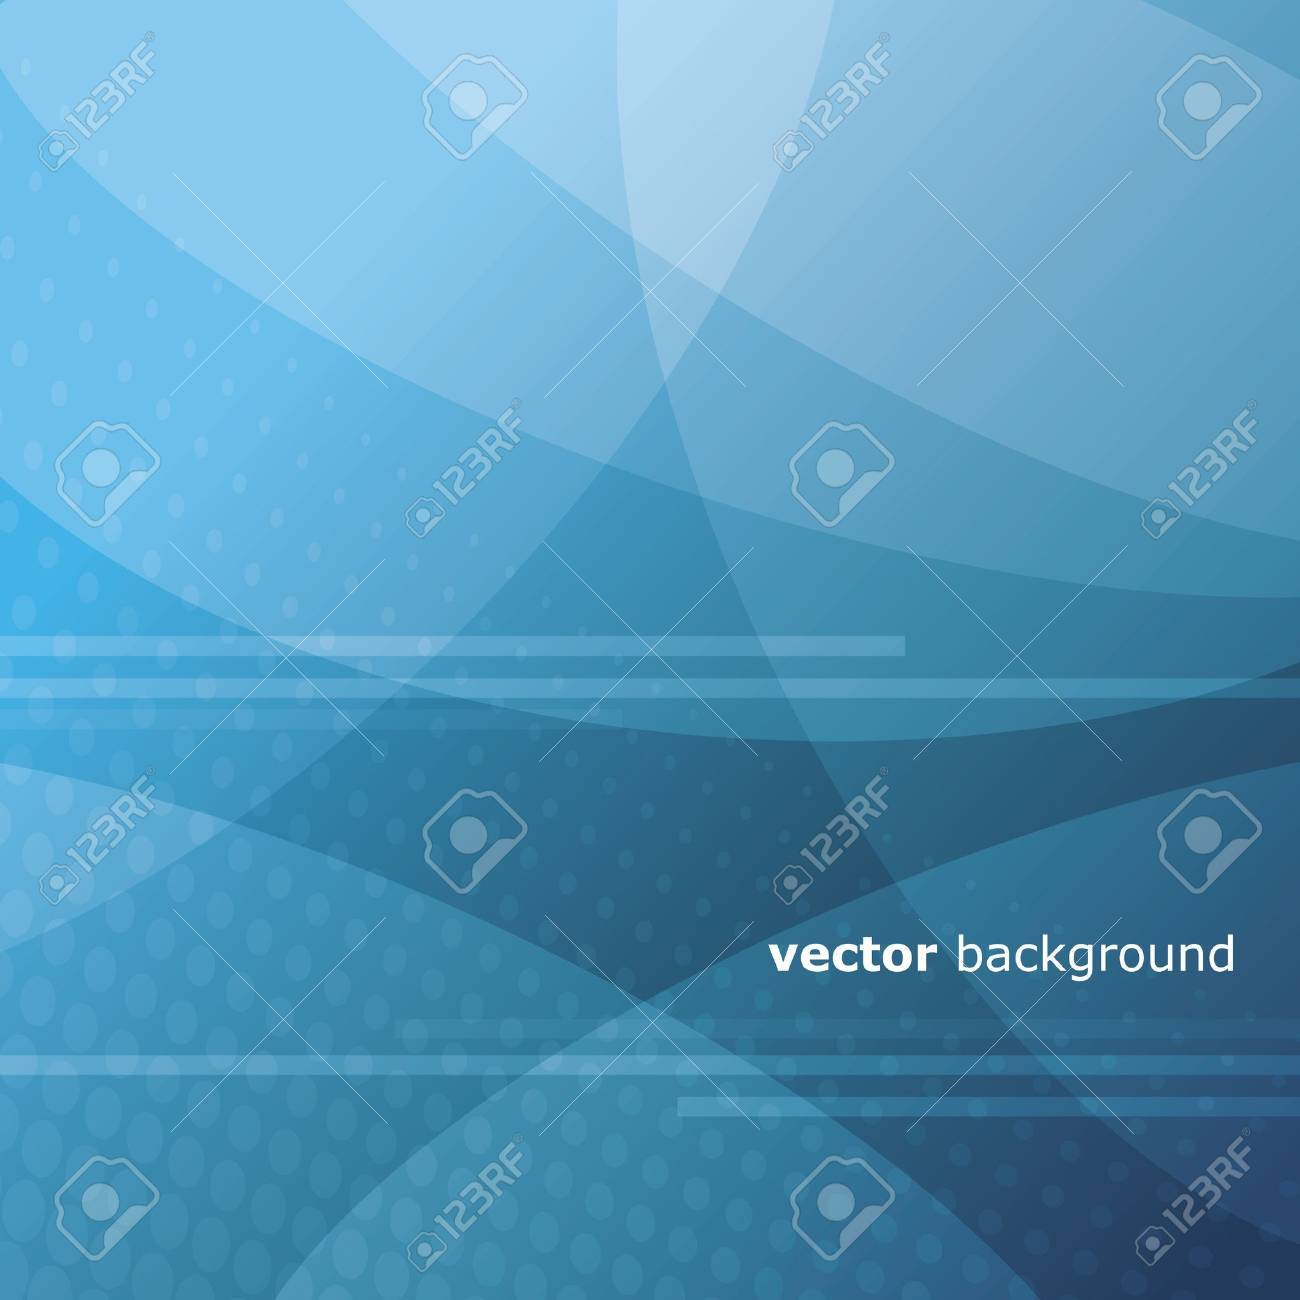 Abstract Background Stock Vector - 10021497